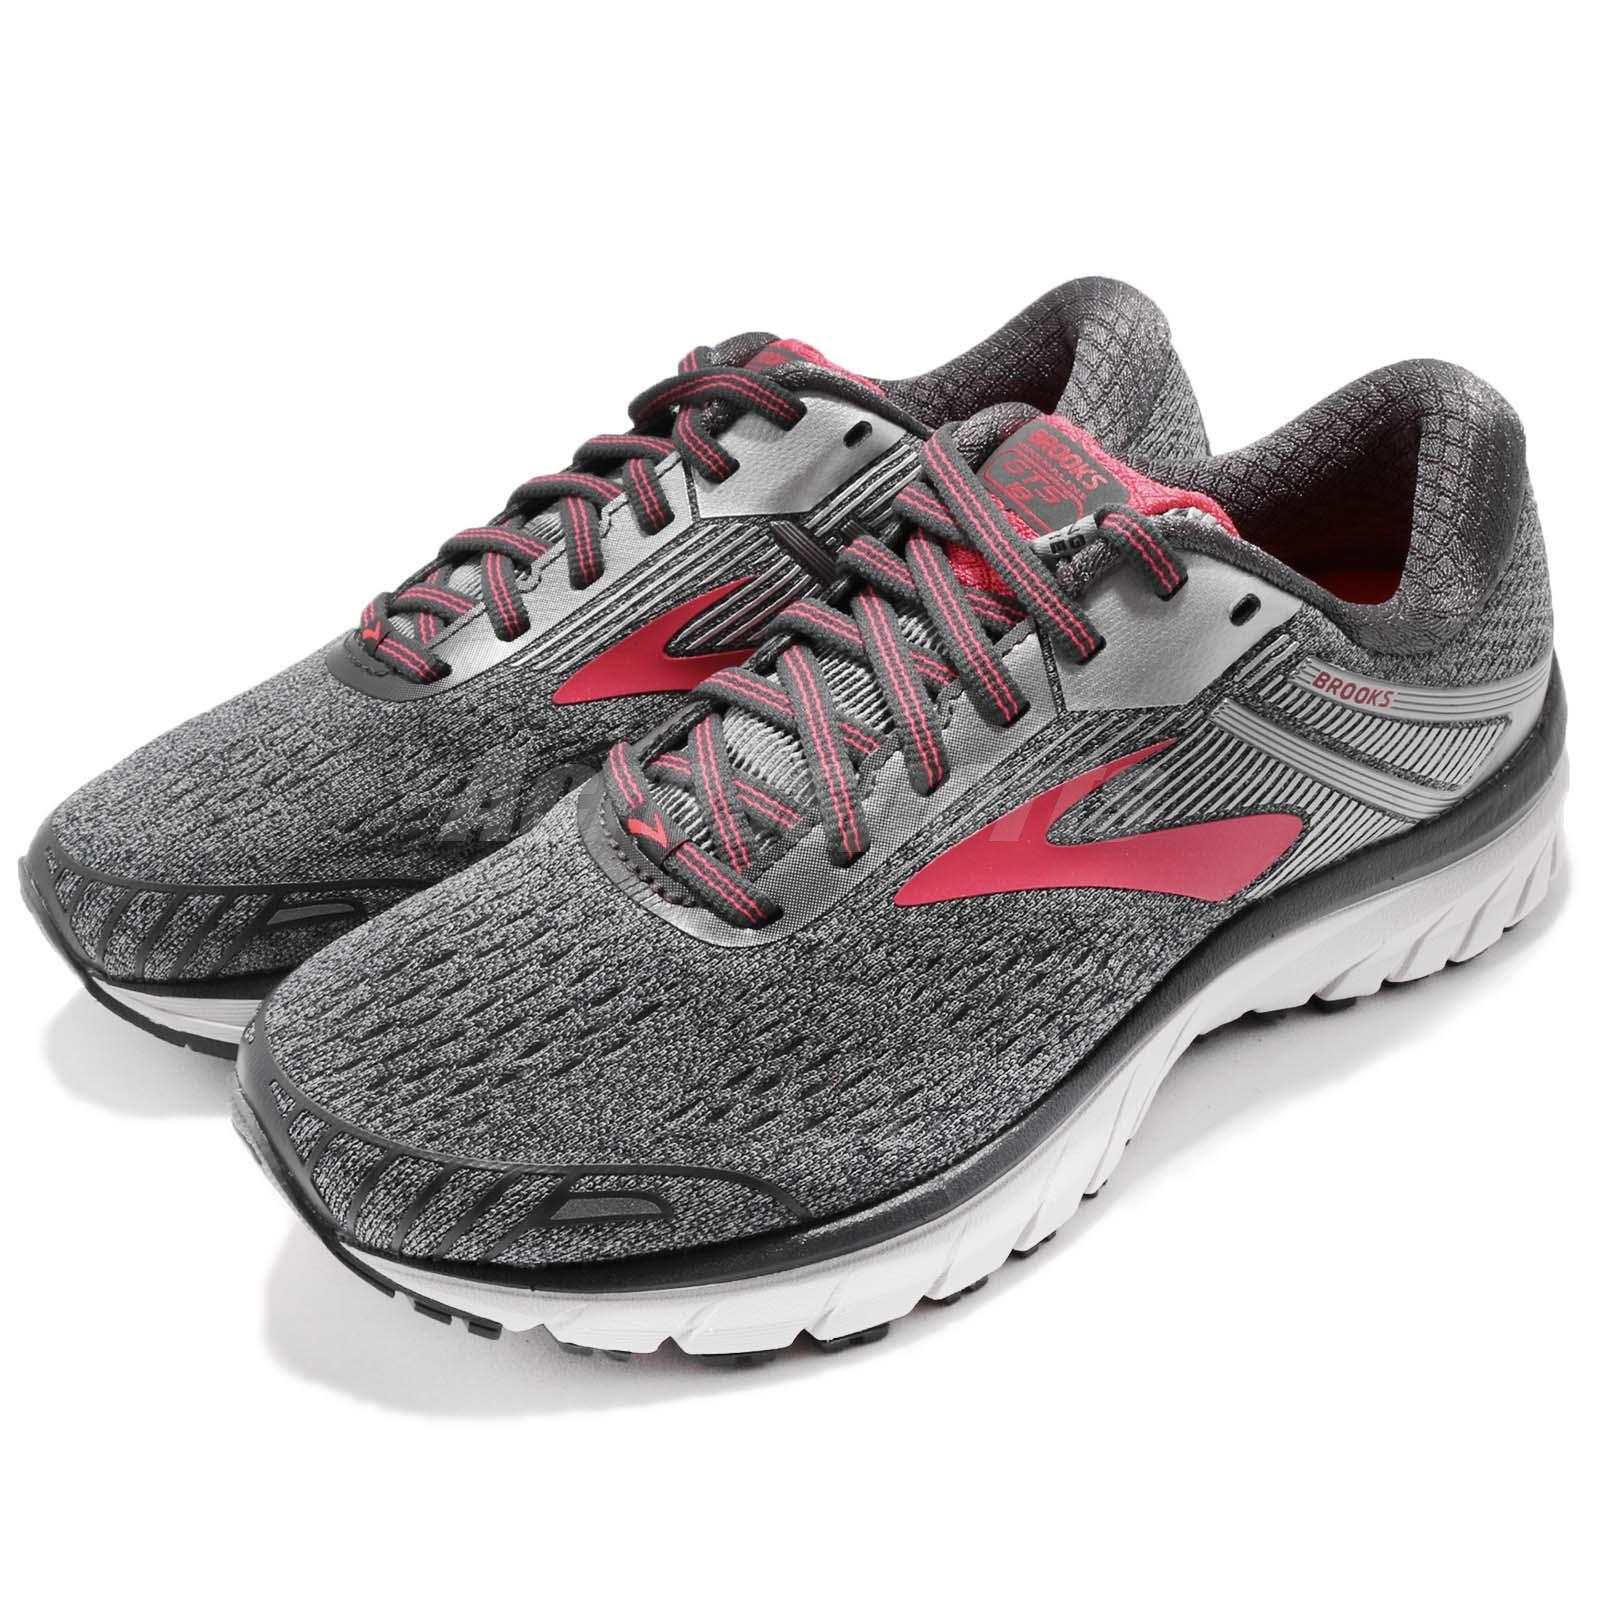 22988fa2460 Details about Brooks Adrenaline GTS 18 D Wide Grey Silver Pink Women  Running Shoes 1202681 D